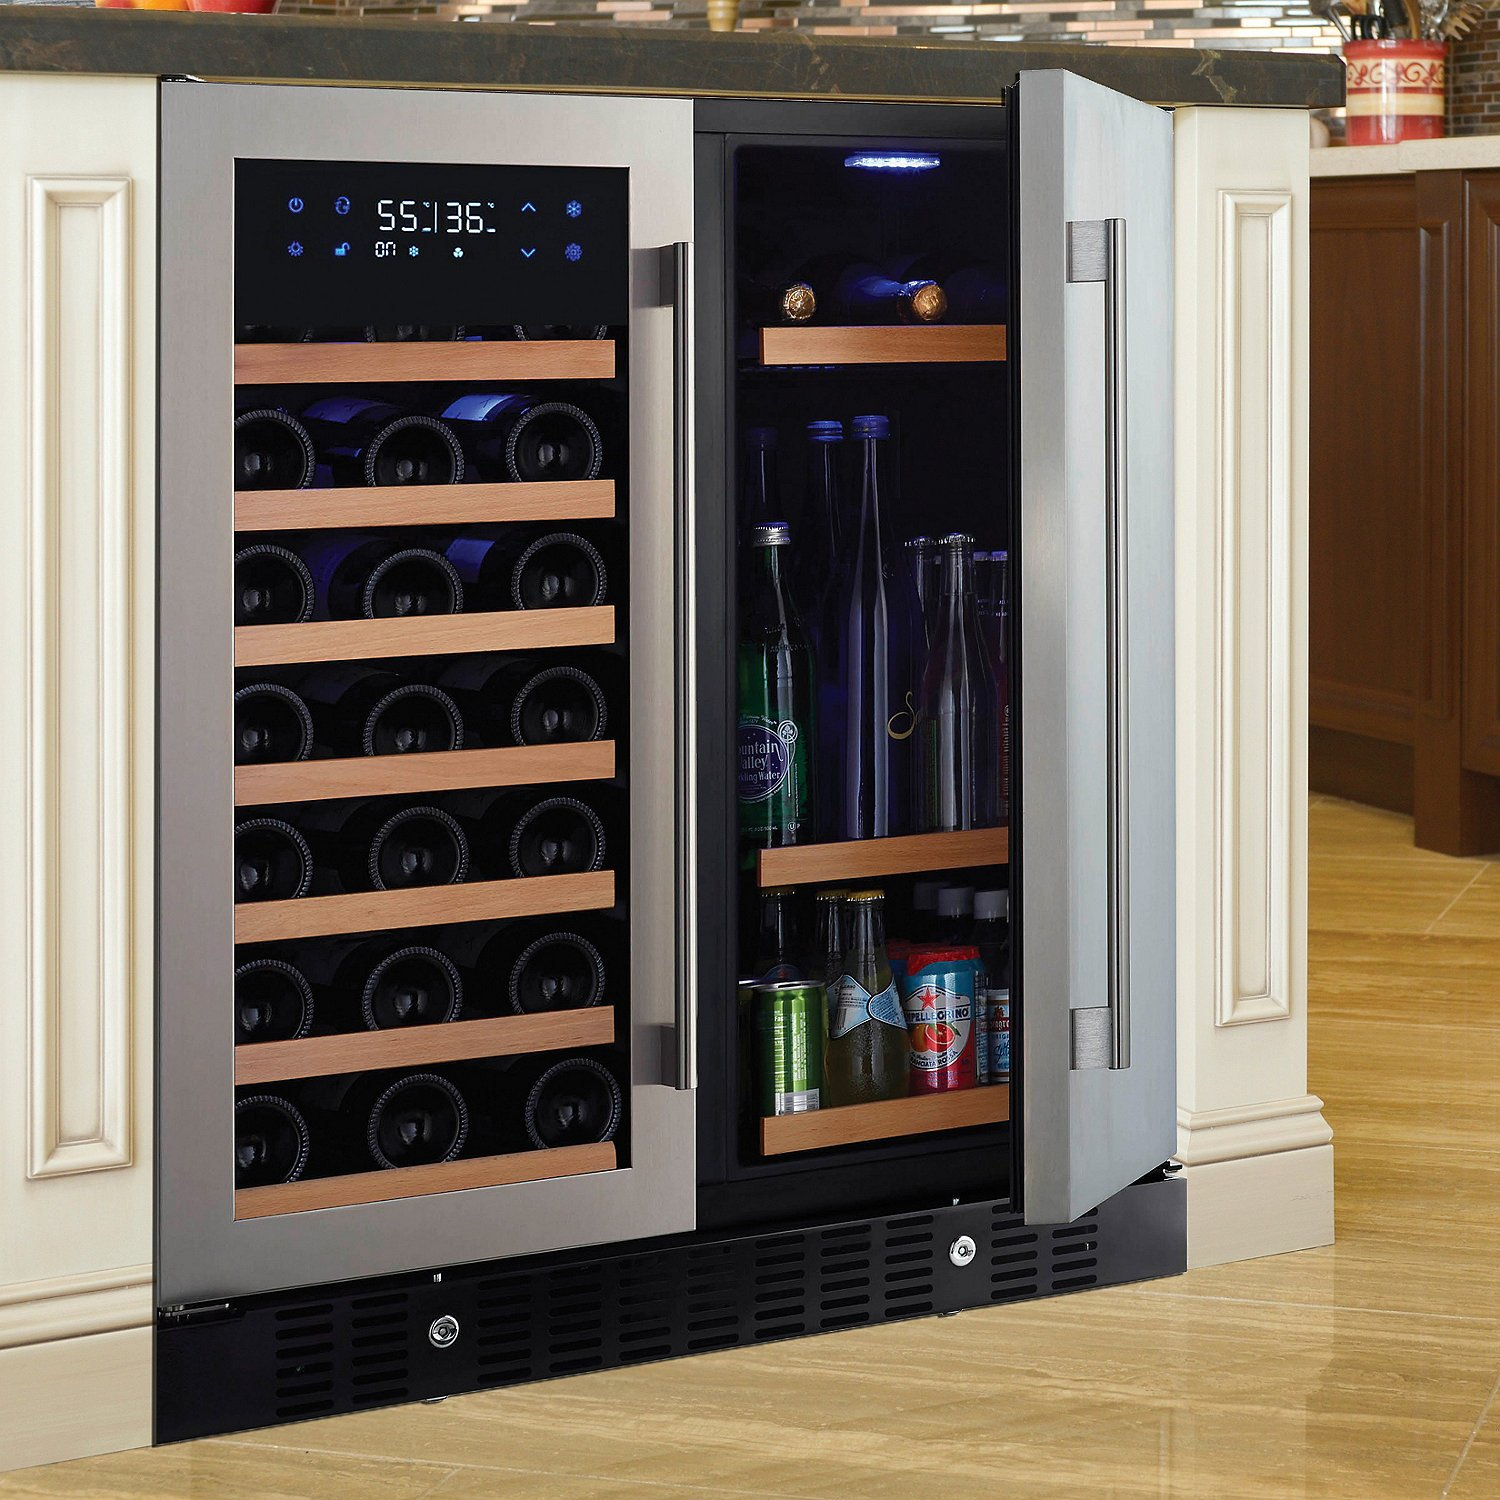 N'FINITY PRO HDX by Wine Enthusiast Wine & Beverage Center – Holds 90 Cans & 35 Wine Bottles